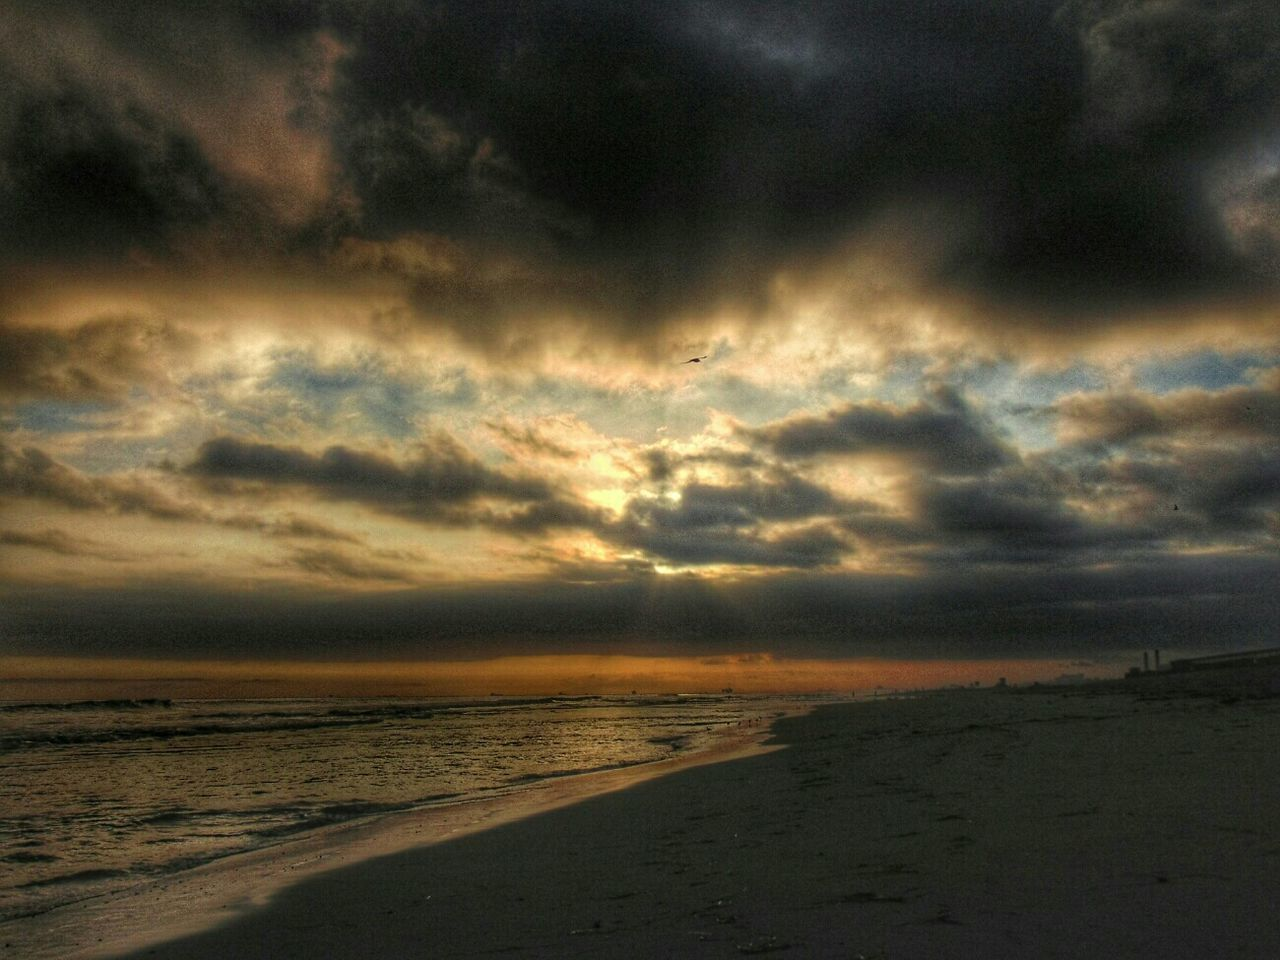 sea, sunset, beach, scenics, beauty in nature, nature, tranquility, tranquil scene, sky, cloud - sky, dramatic sky, horizon over water, water, outdoors, no people, sand, storm cloud, day